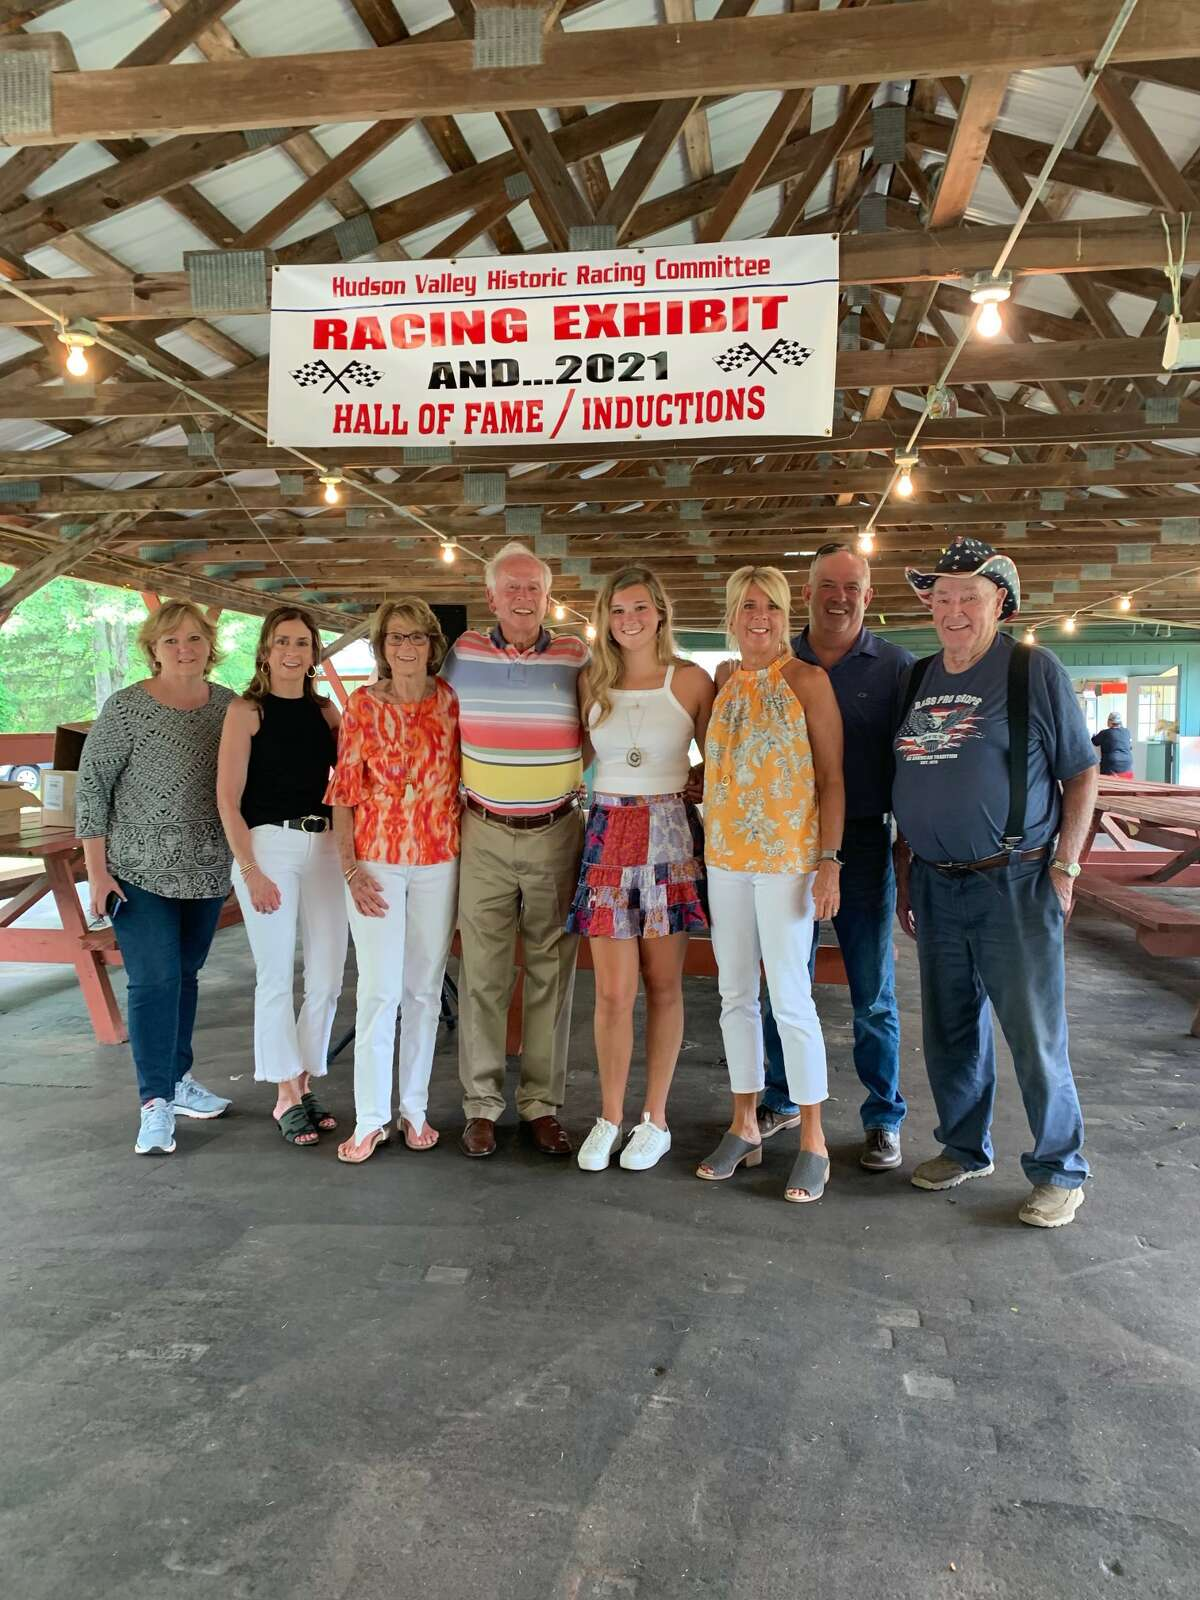 Driver Ernie Marshall, fourth from left, is joined at his Hudson Valley Historic Racing Hall of Fame induction ceremony by, from left, Kathy Wiltse Marano, daughter Linda Marshall, wife Nancy Marshall, granddaughter Jenni Zackeo, daughter Karen Marshall Ivey, son-in-law Justin Ivey and Eel Wiltse.